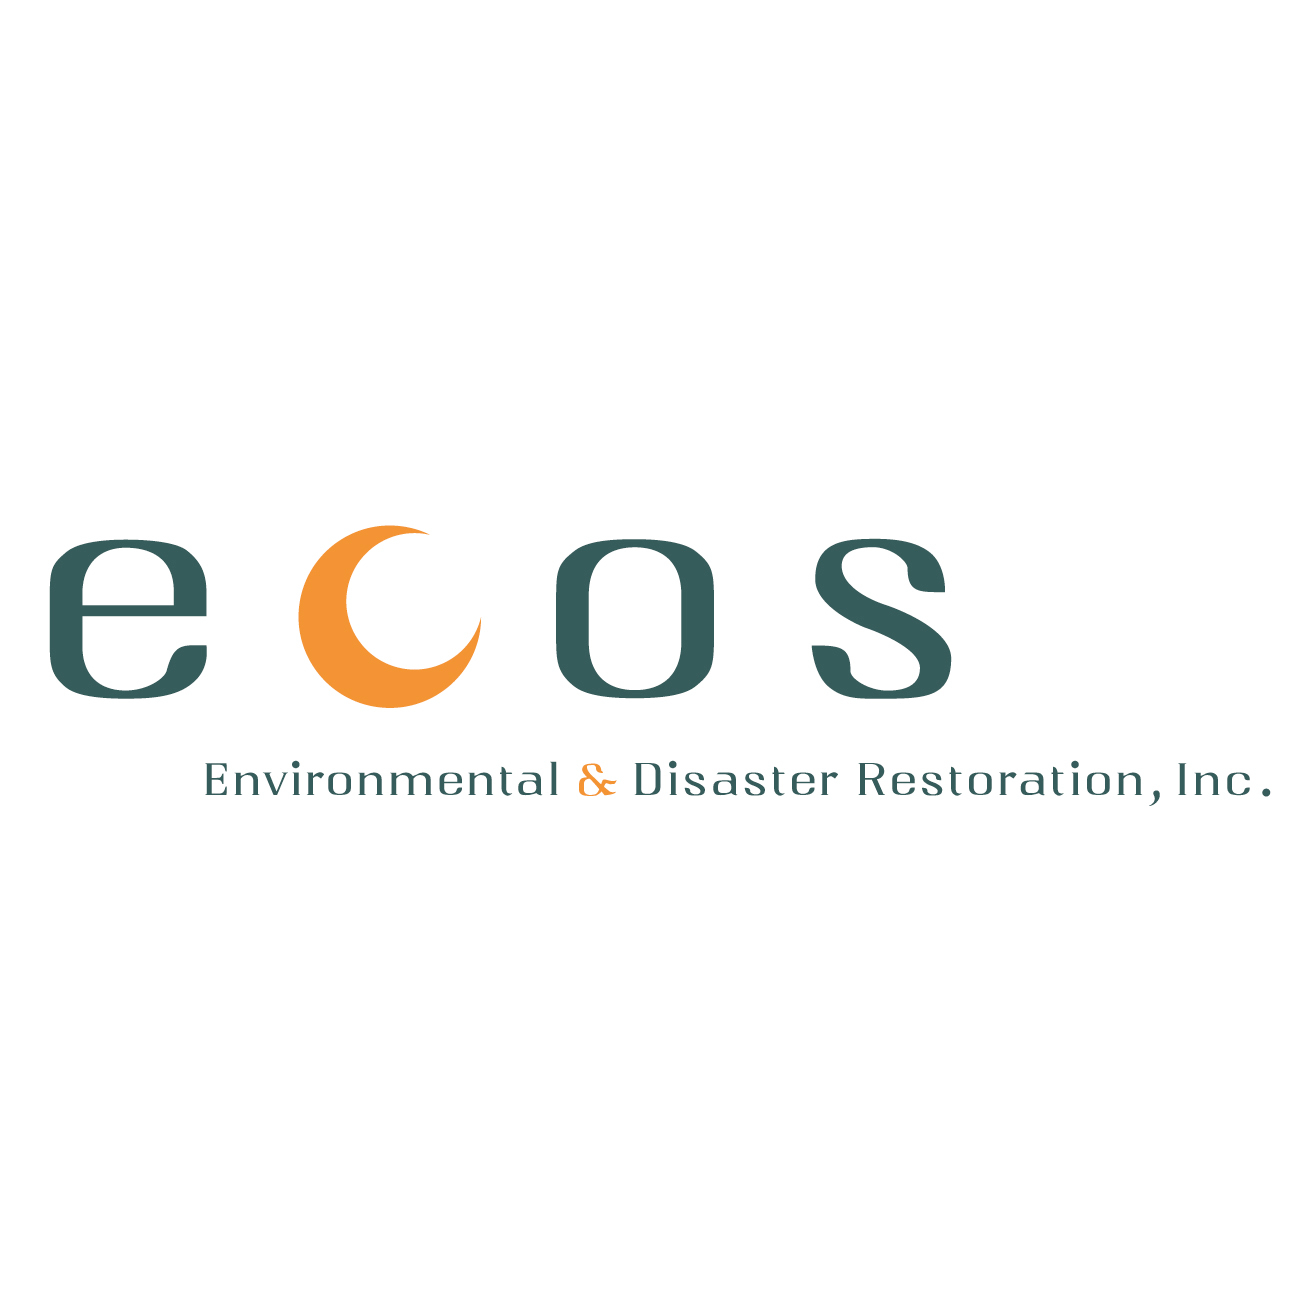 ECOS Environmental & Disaster Restoration, Inc. image 27